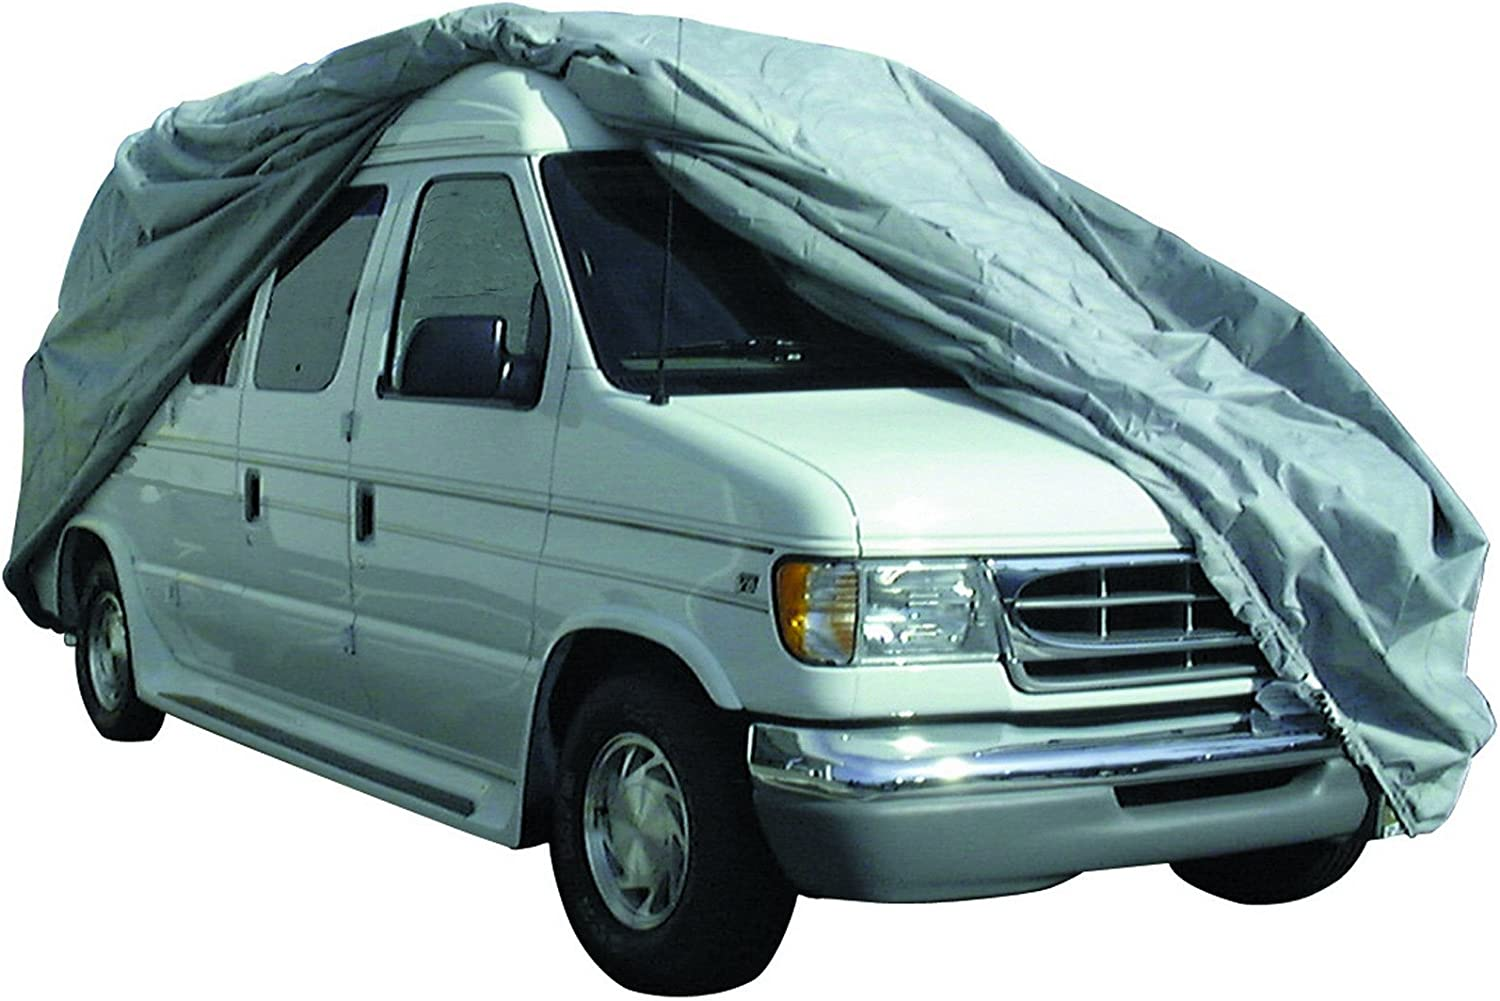 ADCO 12230 SFS Aqua Shed Class B RV Cover Up to 21 w//36 Bubble Top